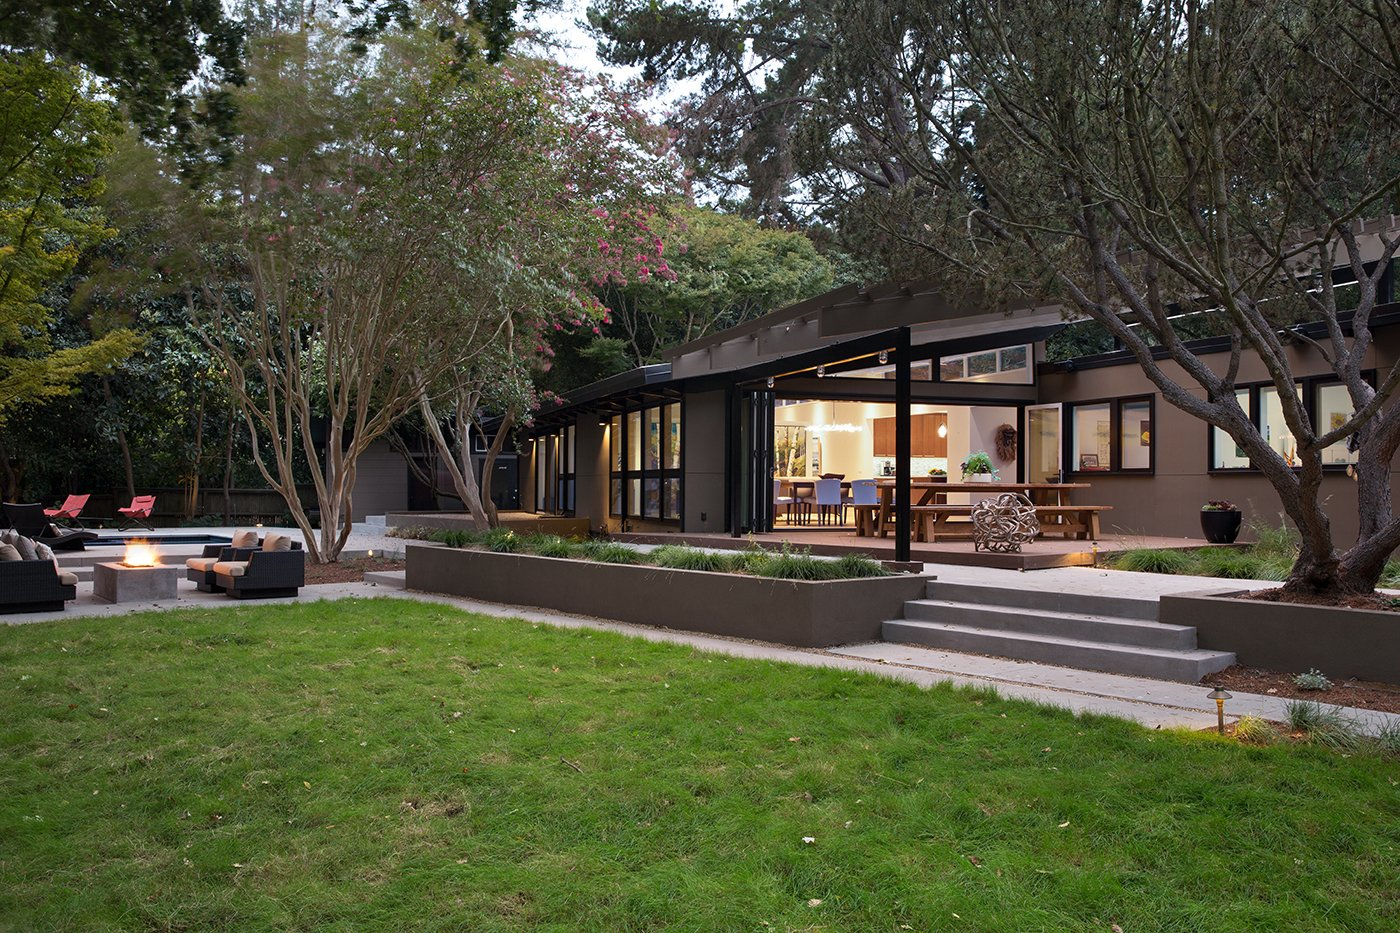 "Outdoor, Grass, and Back Yard Lafayette Mid Century Modern Remodel   The owners of this property had been away from the Bay Area for many years, and looked forward to returning to an elegant mid-century modern house. The one they bought was anything but that. Faced with a ""remuddled"" kitchen from one decade, a haphazard bedroom / family room addition from another, and an otherwise disjointed and generally run-down mid-century modern house, the owners asked Klopf Architecture and Envision Landscape Studio to re-imagine this house and property as a unified, flowing, sophisticated, warm, modern indoor / outdoor living space for a family of five.   Opening up the spaces internally and from inside to out was the first order of business. The formerly disjointed eat-in kitchen with 7 foot high ceilings were opened up to the living room, re-oriented, and replaced with a spacious cook's kitchen complete with a row of skylights bringing light into the space. Adjacent the living room wall was completely opened up with La Cantina folding door system, connecting the interior living space to a new wood deck that acts as a continuation of the wood floor. People can flow from kitchen to the living / dining room and the deck seamlessly, making the main entertainment space feel at once unified and complete, and at the same time open and limitless.   Klopf opened up the bedroom with a large sliding panel, and turned what was once a large walk-in closet into an office area, again with a large sliding panel. The master bathroom has high windows all along one wall to bring in light, and a large wet room area for the shower and tub. The dark, solid roof structure over the patio was replaced with an open trellis that allows plenty of light, brightening the new deck area as well as the interior of the house. Located in Lafayette, CA this remodeled single-family house is 3,363 square foot, 4 bedroom, and 3.5 bathroom.   Klopf Architecture"